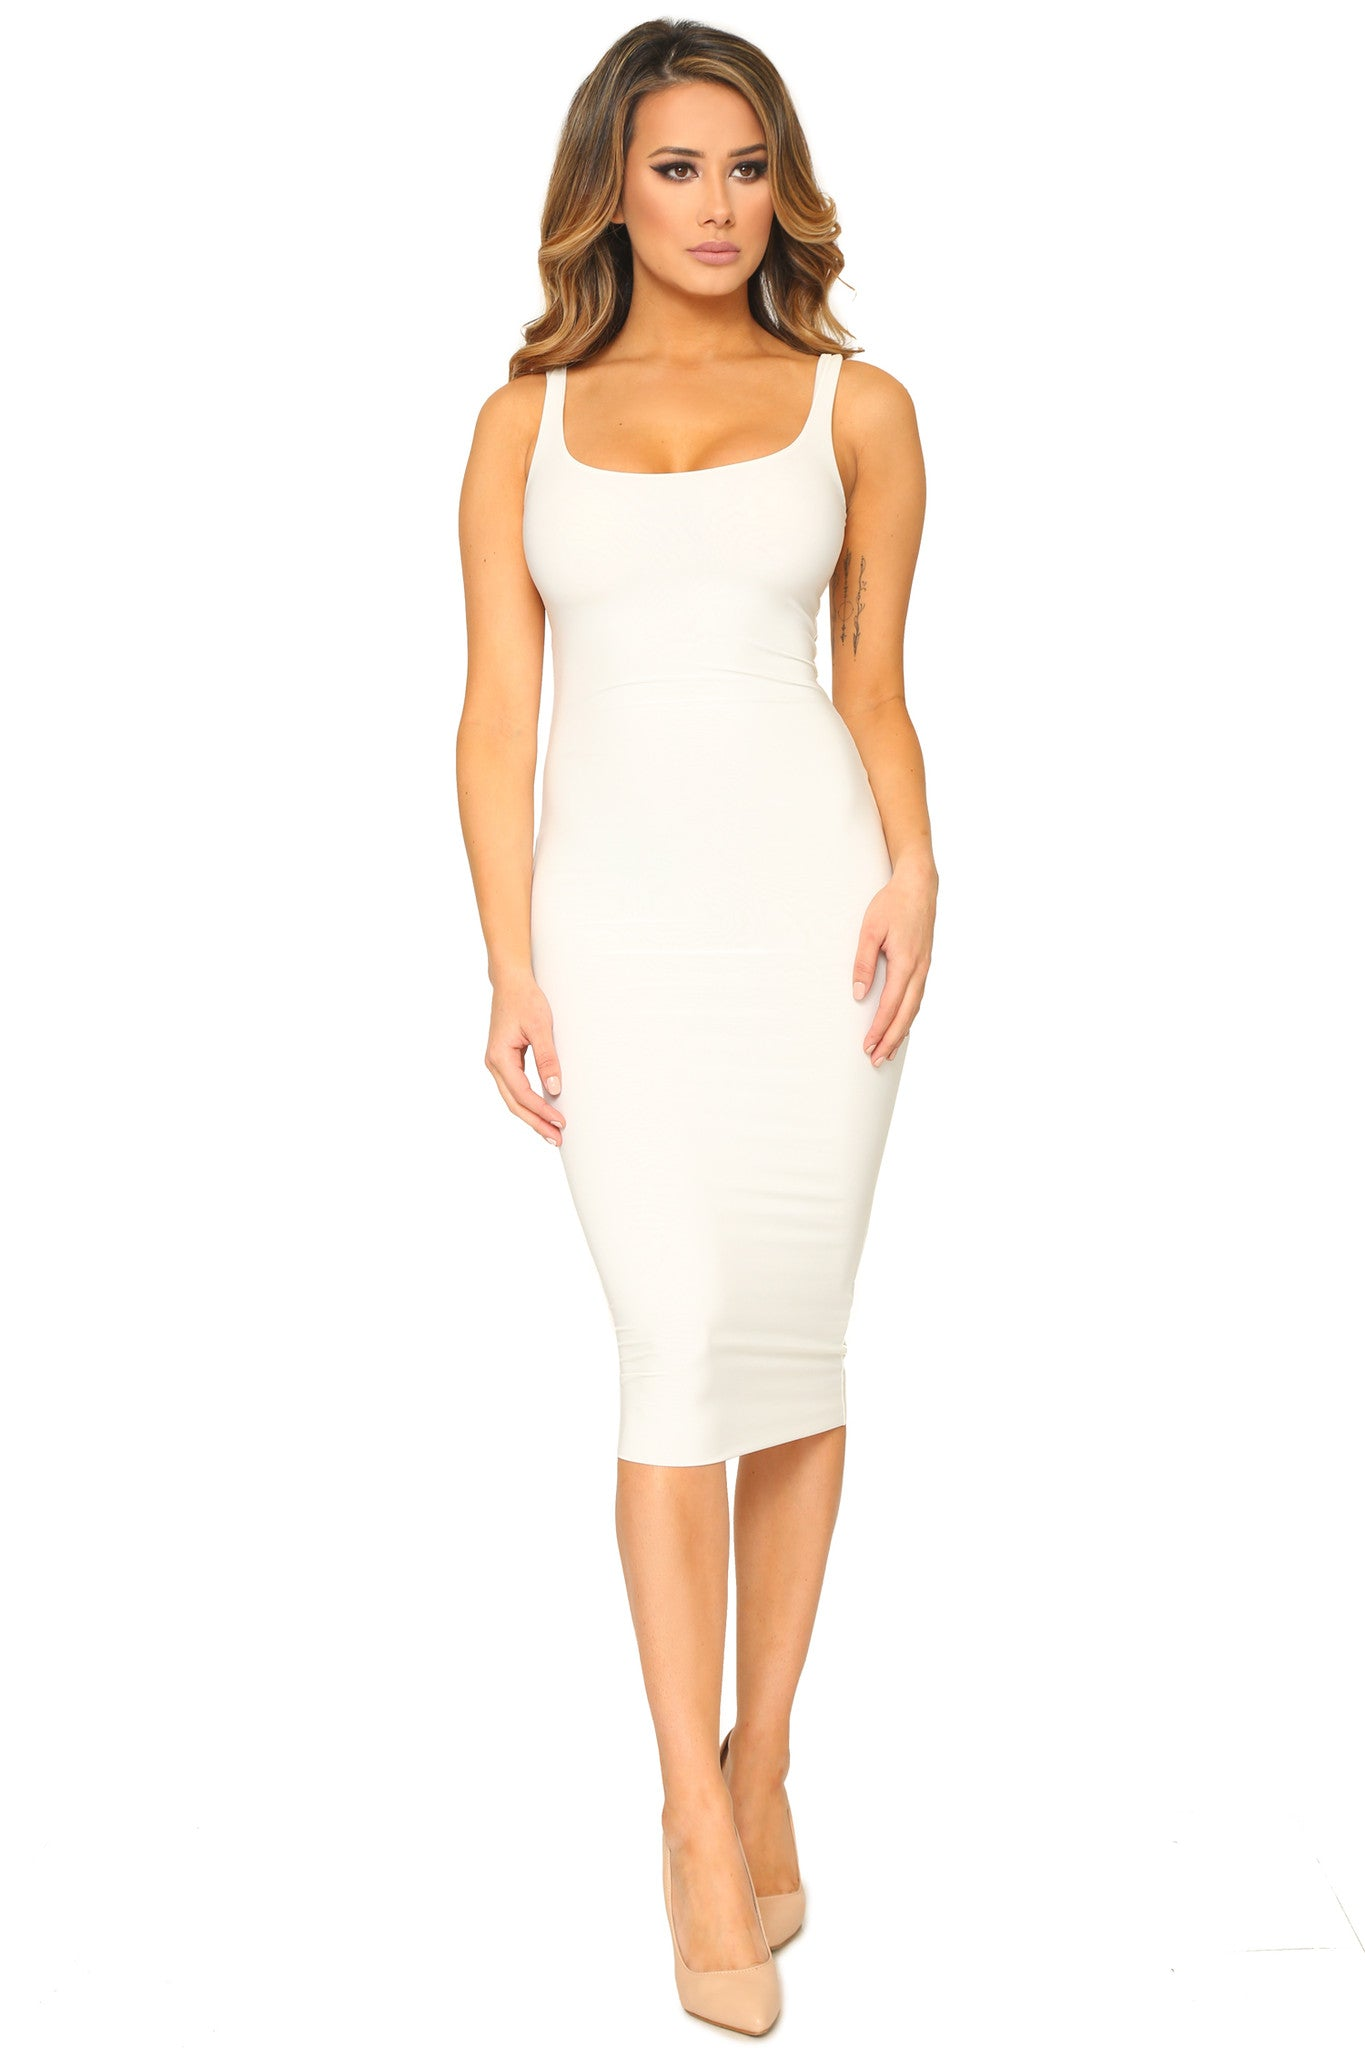 KAREN DRESS - Glam Envy - 1